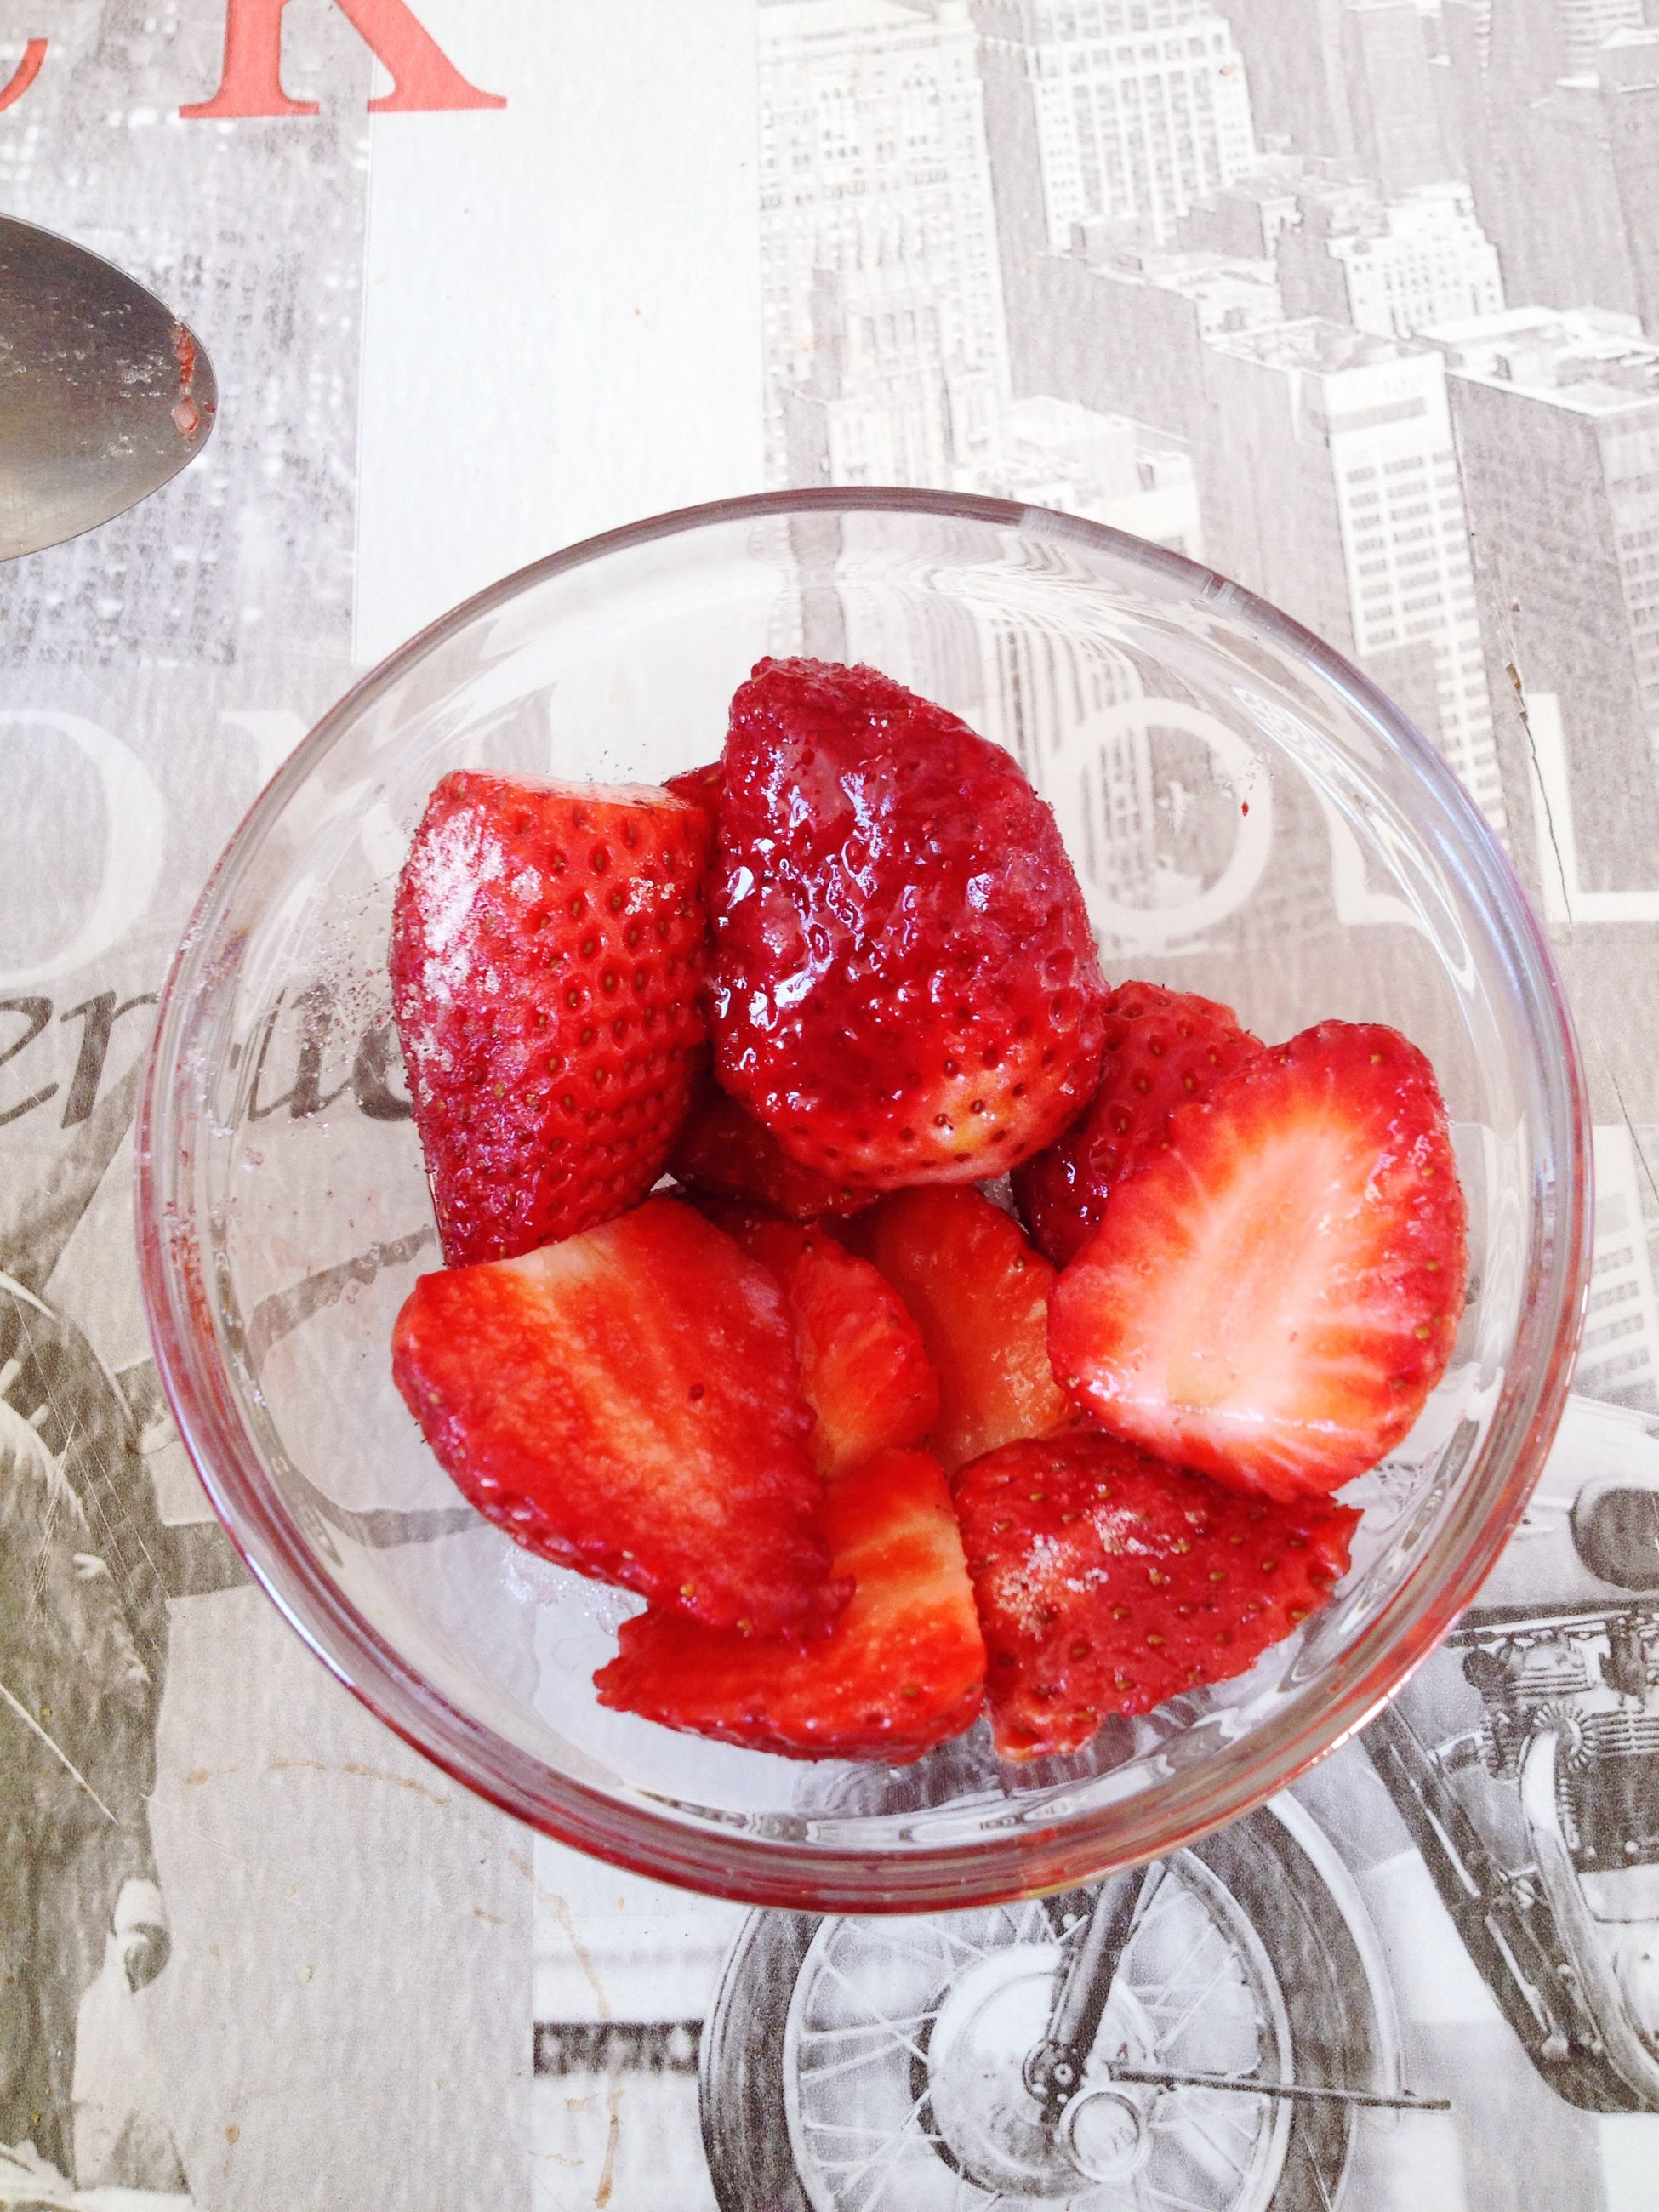 food and drink, food, freshness, fruit, red, strawberry, healthy eating, still life, indoors, ready-to-eat, high angle view, table, close-up, raspberry, indulgence, berry fruit, no people, bowl, ripe, sweet food